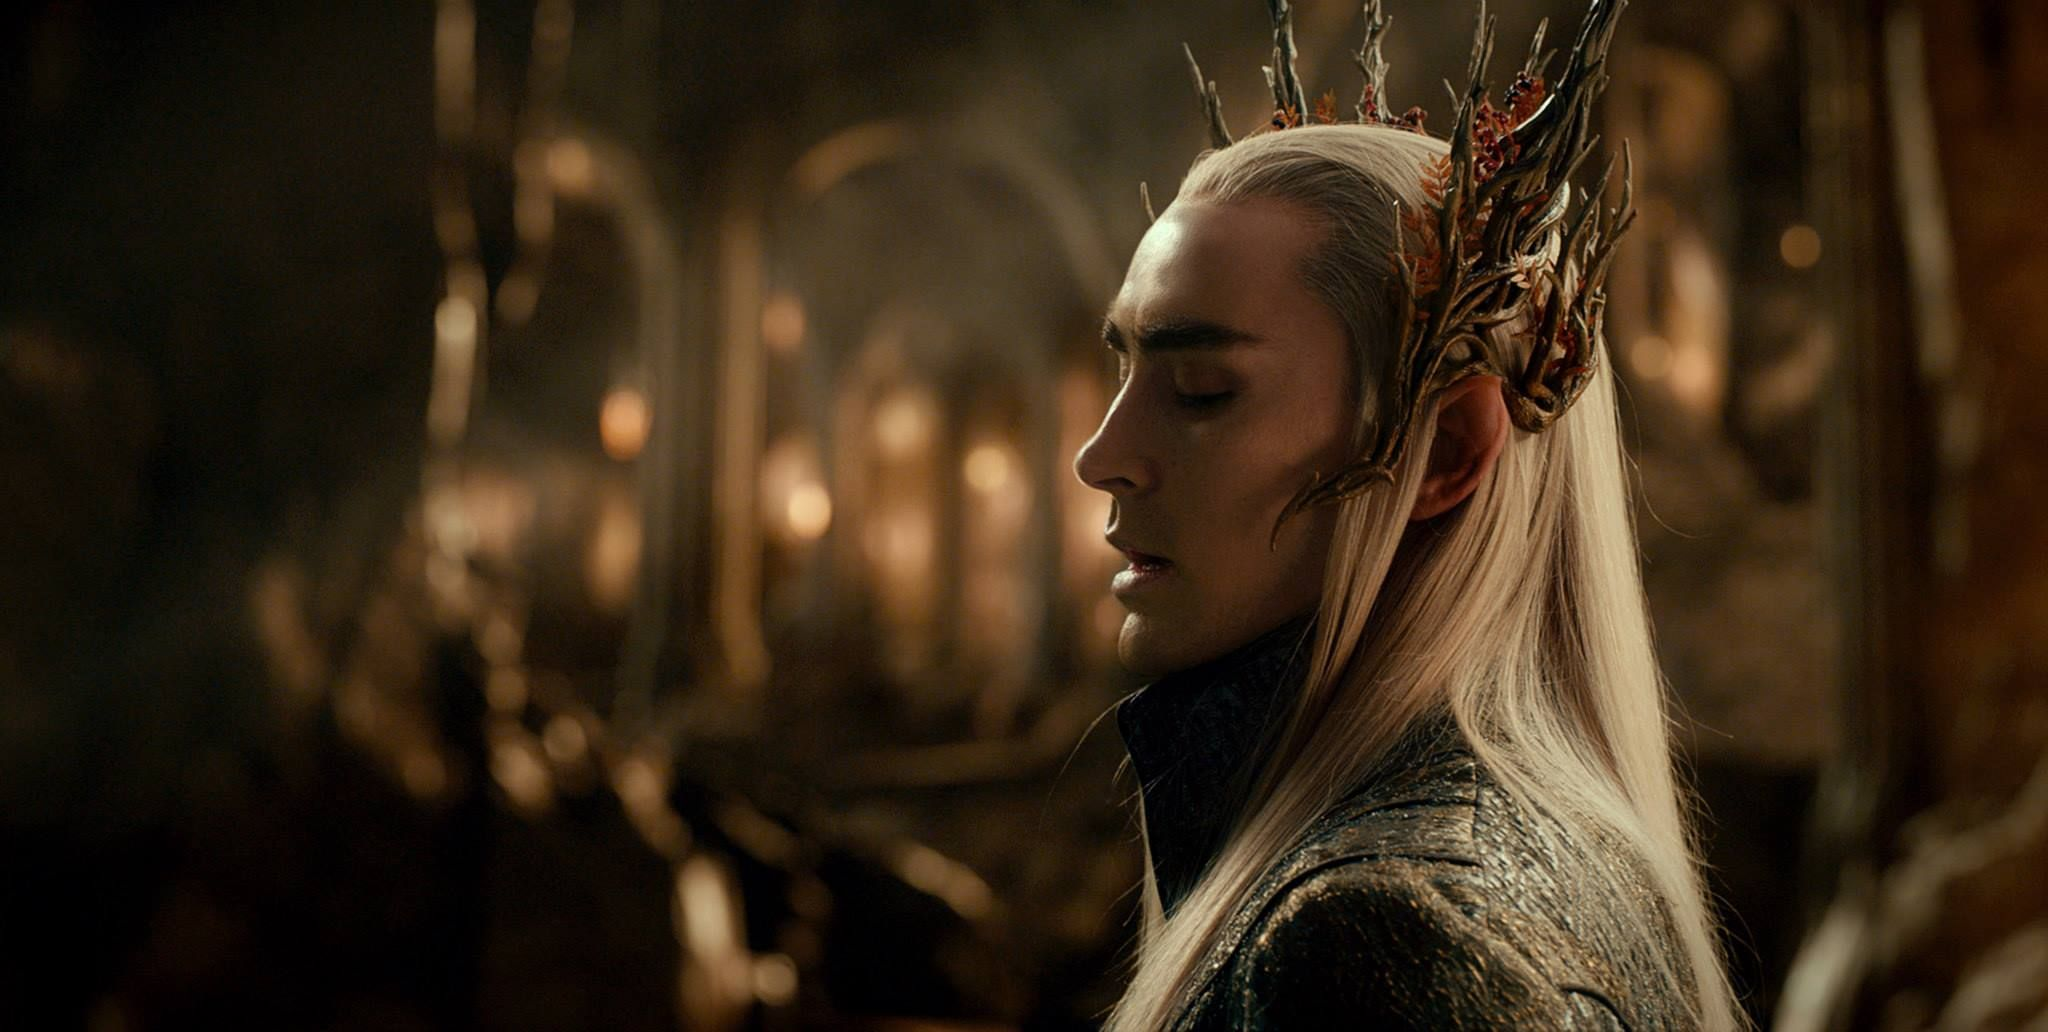 Fashion style Desolation Thranduil of smaug armor pictures for girls